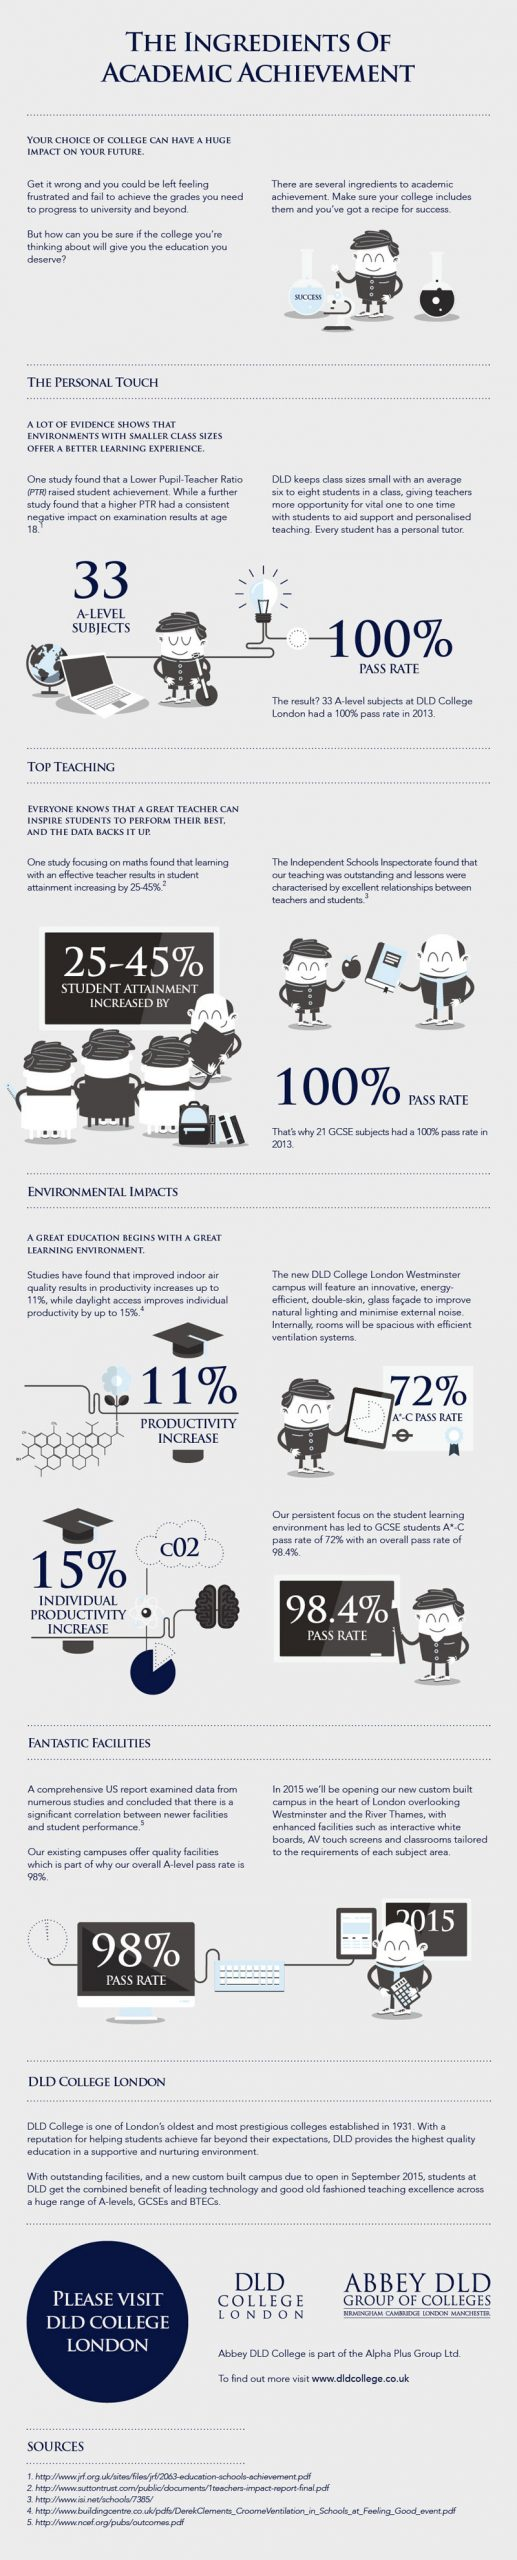 DLD College London A Level academic achievement infographic